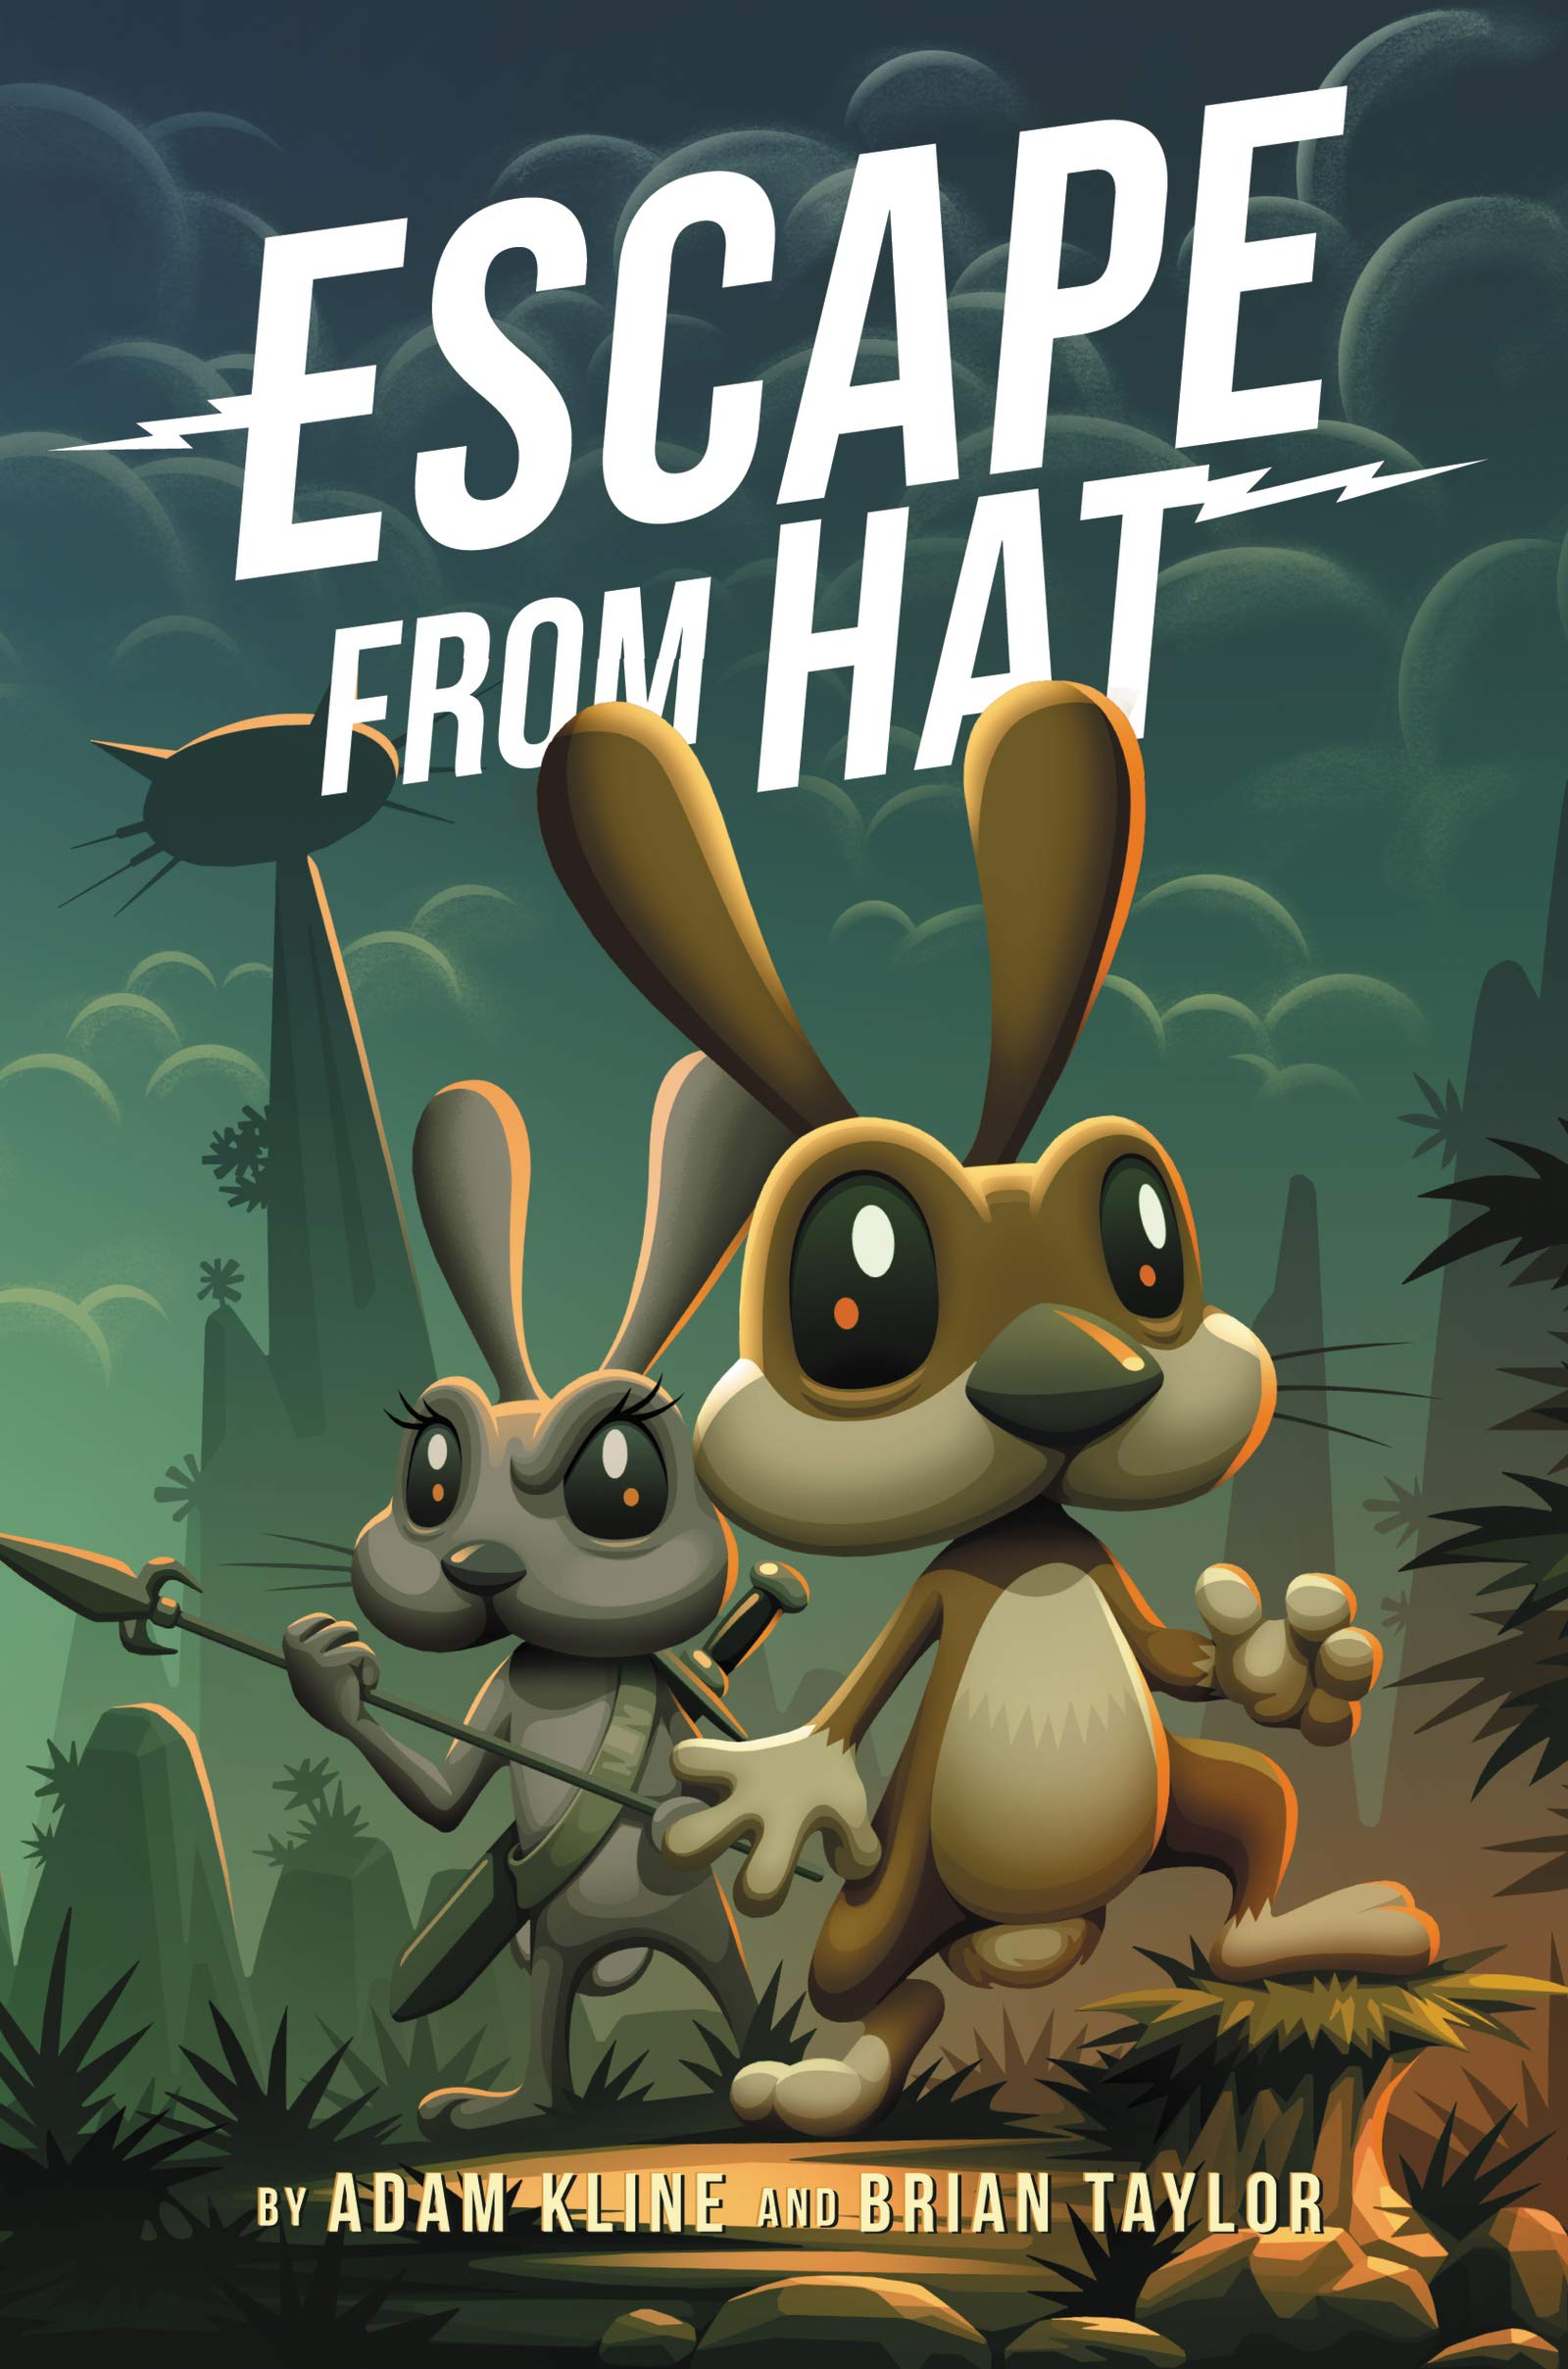 Download Filme Escape from Hat Torrent 2022 Qualidade Hd